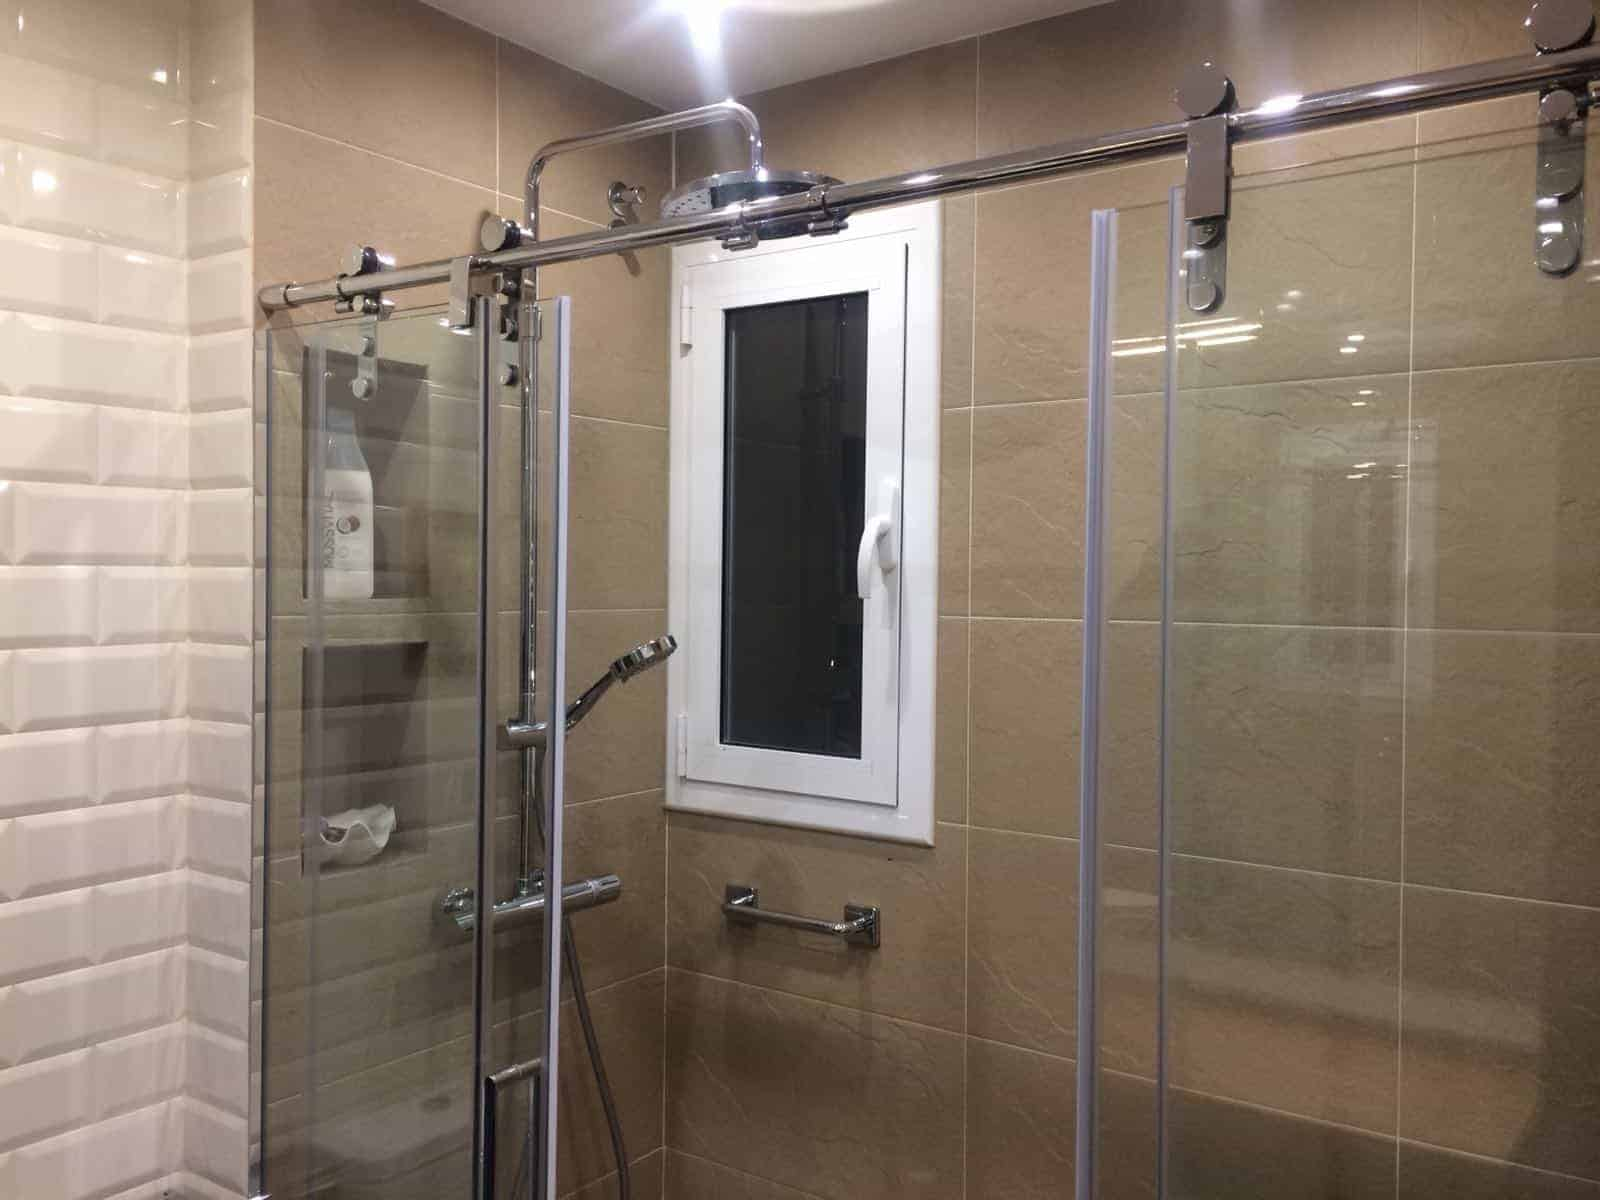 canvio de bañera por baño dos de maig contract solutions